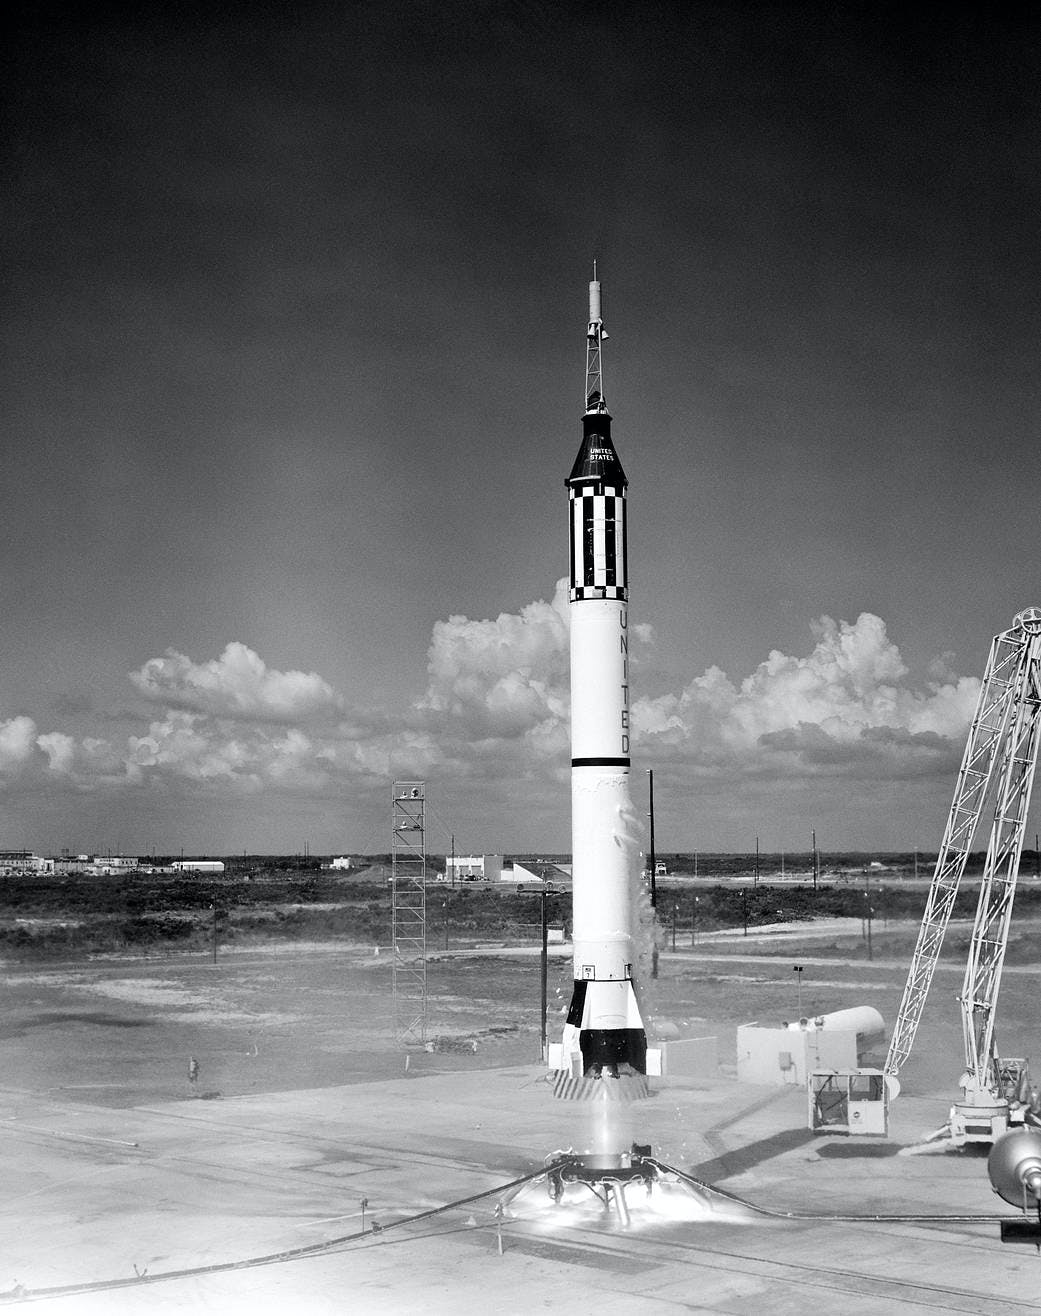 Launch of  the Mercury-Redstone 3 (MR-3) rocket for the Freedom 7 mission, the US's first crewed spaceflight, for which Katherine Johnson did the analysis.